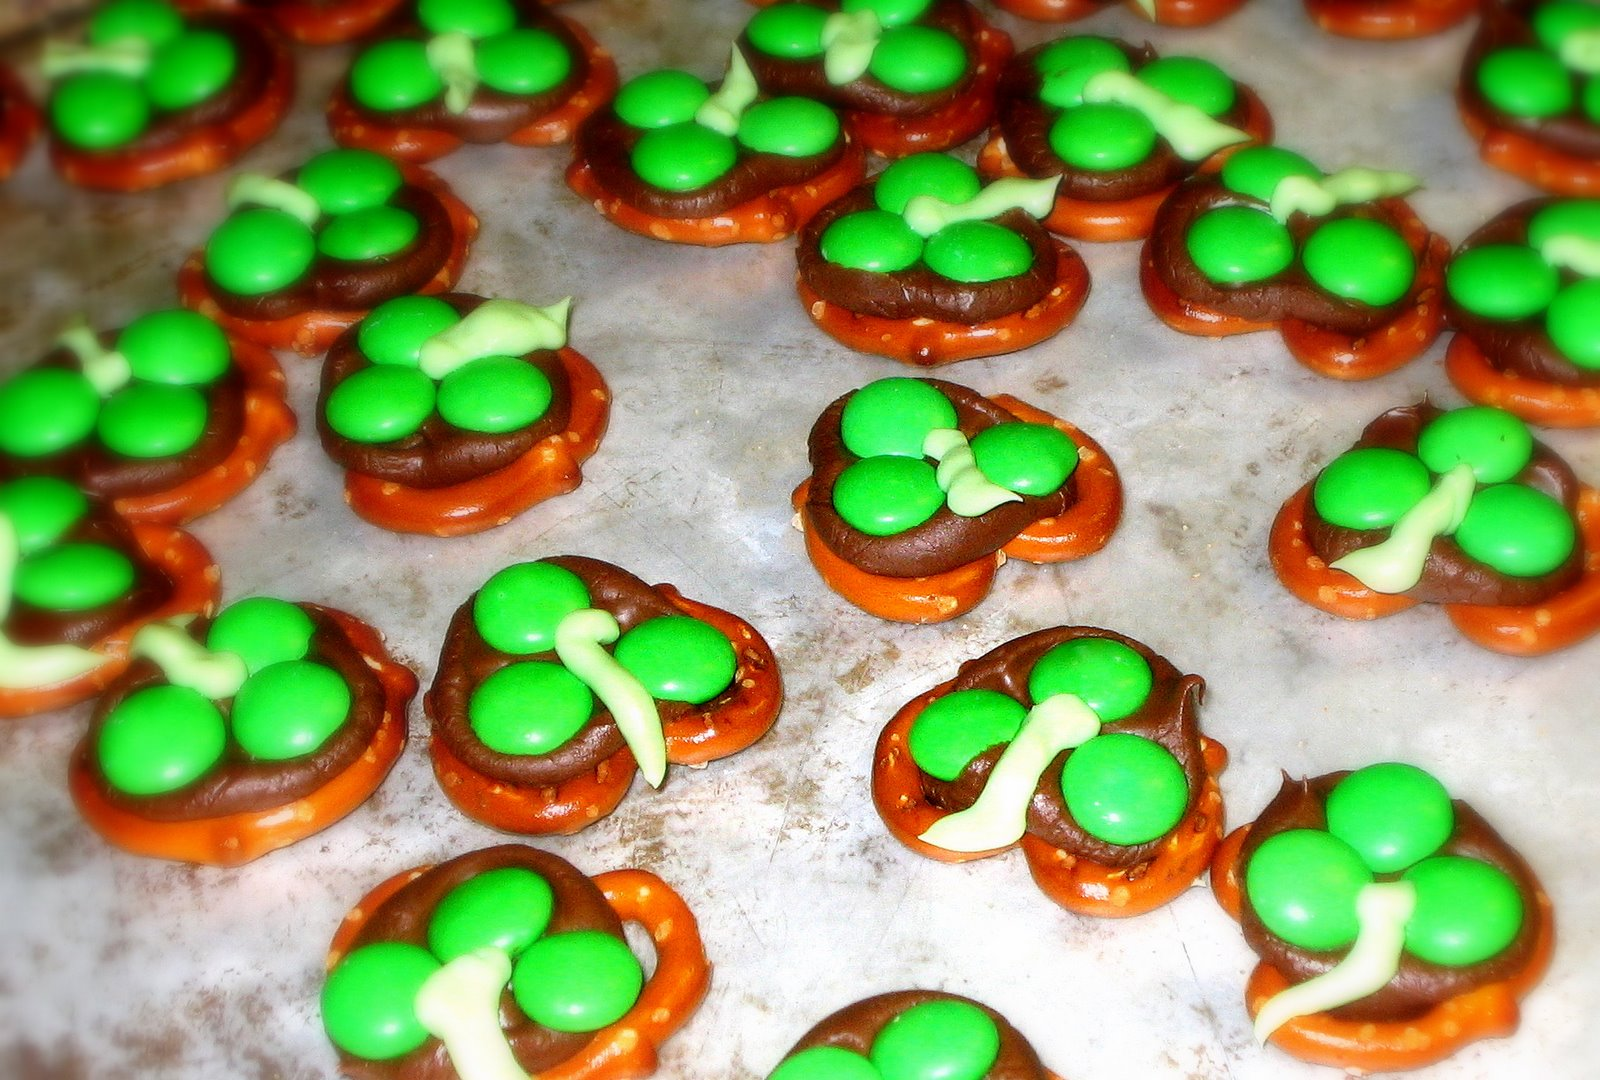 ... add your favorite green candies to make these little shamrock snacks